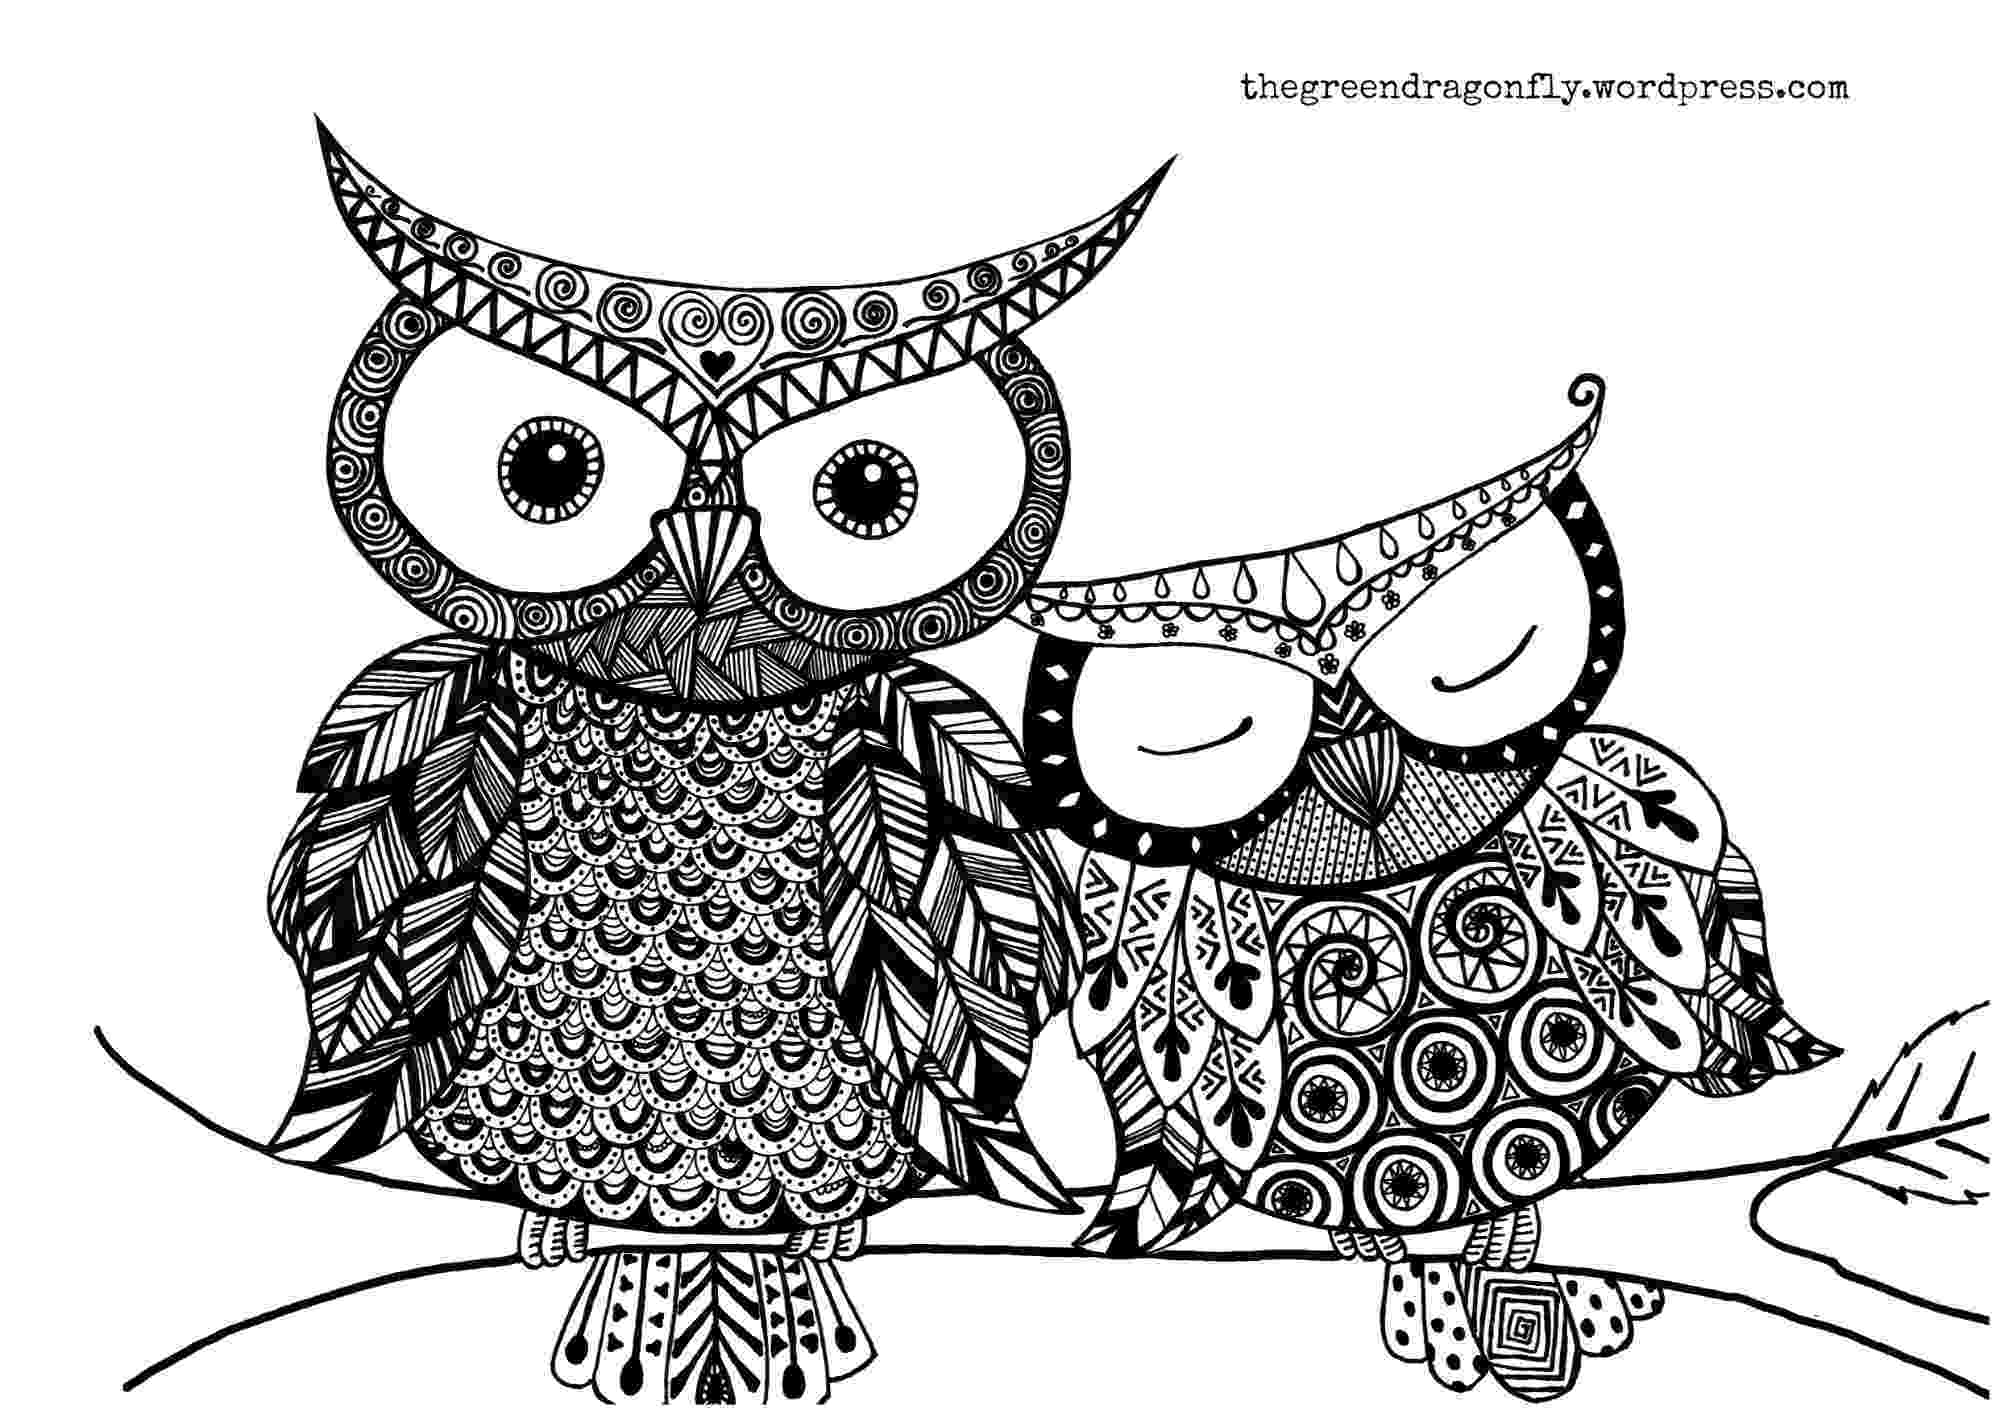 pictures of owls to color cute owl coloring page free printable coloring pages owls pictures color of to